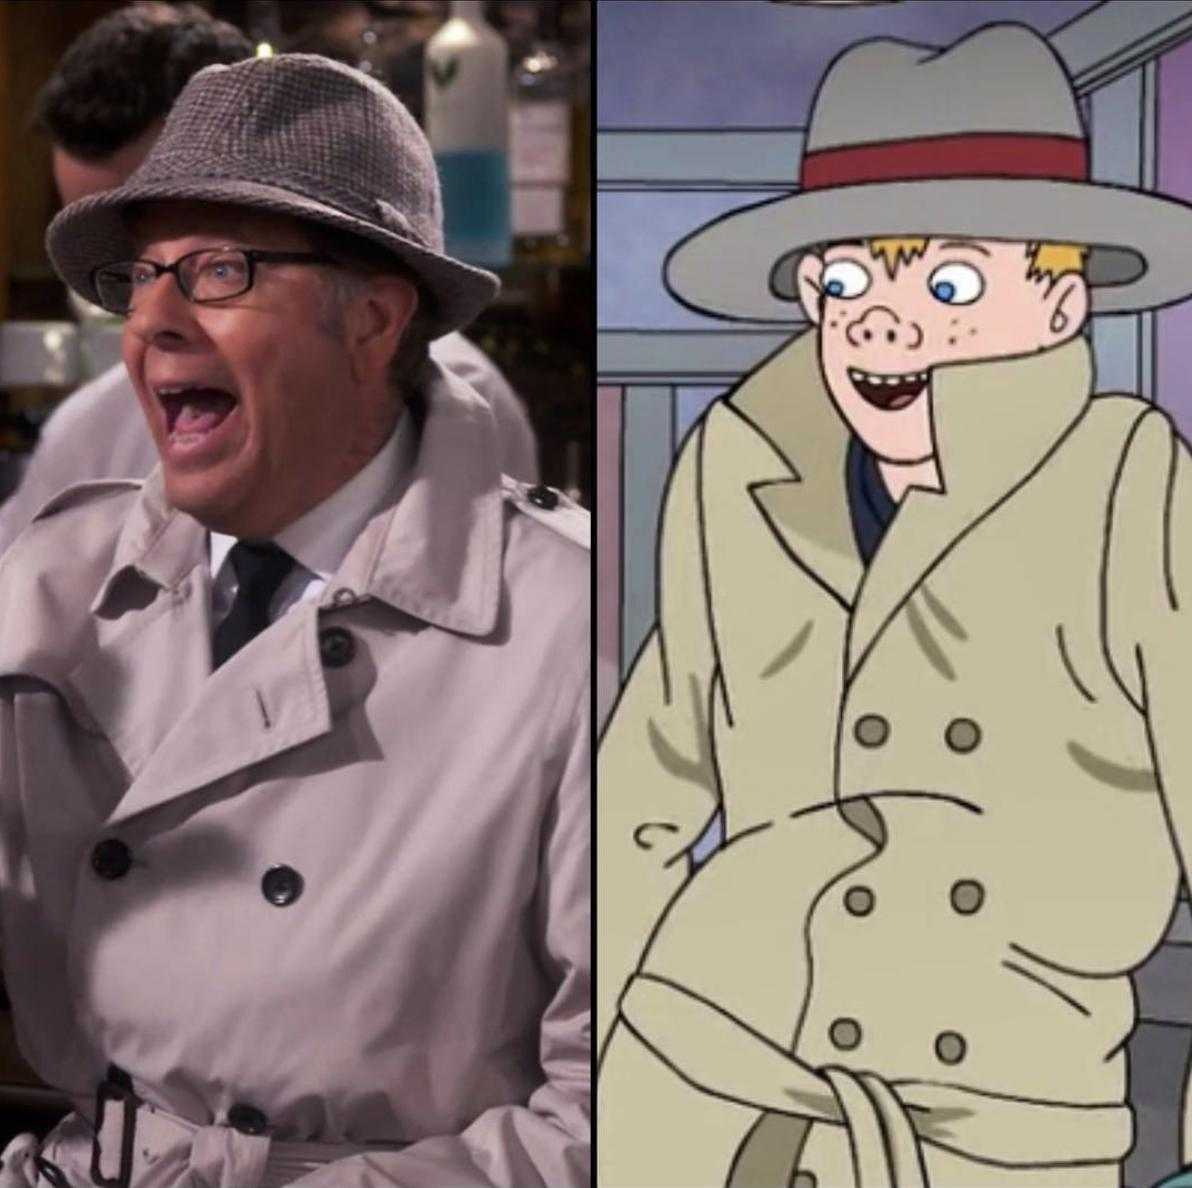 Dr. Leslie and Vincent Adultman — separated at birth?!? #ODAAT #BojackHorseman <br>http://pic.twitter.com/M65bZRoH0n